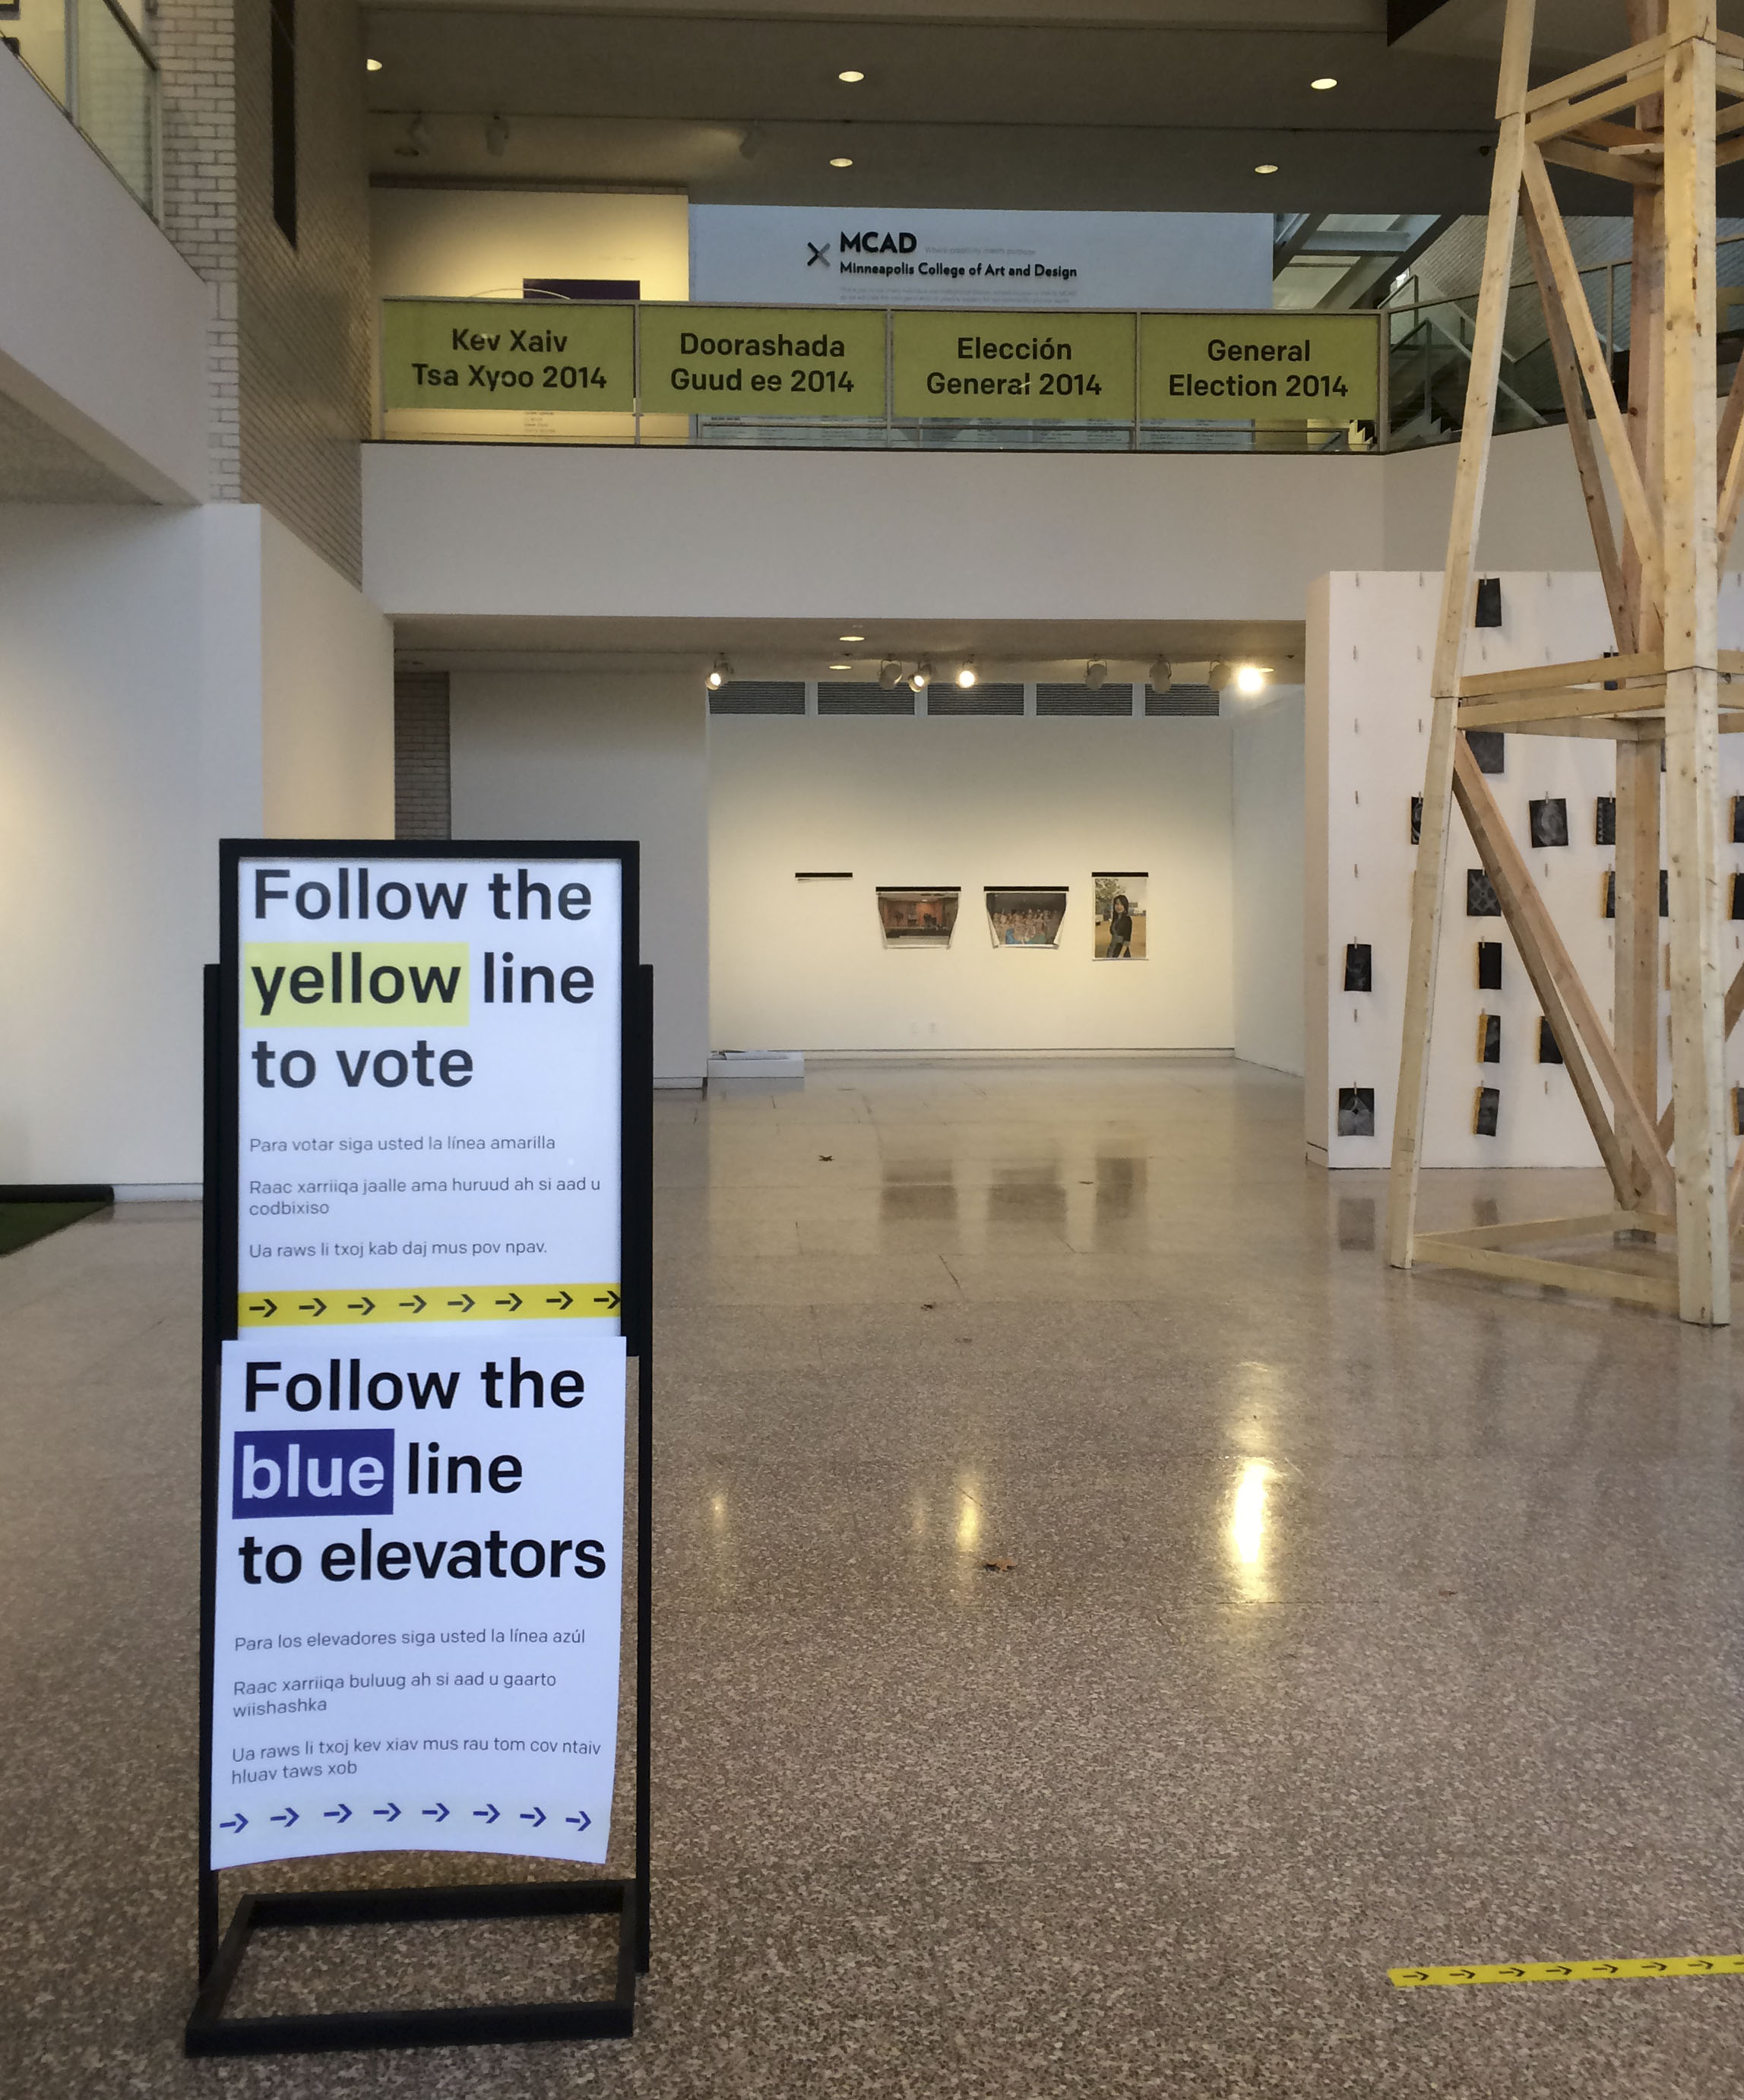 Main gallery elections signage